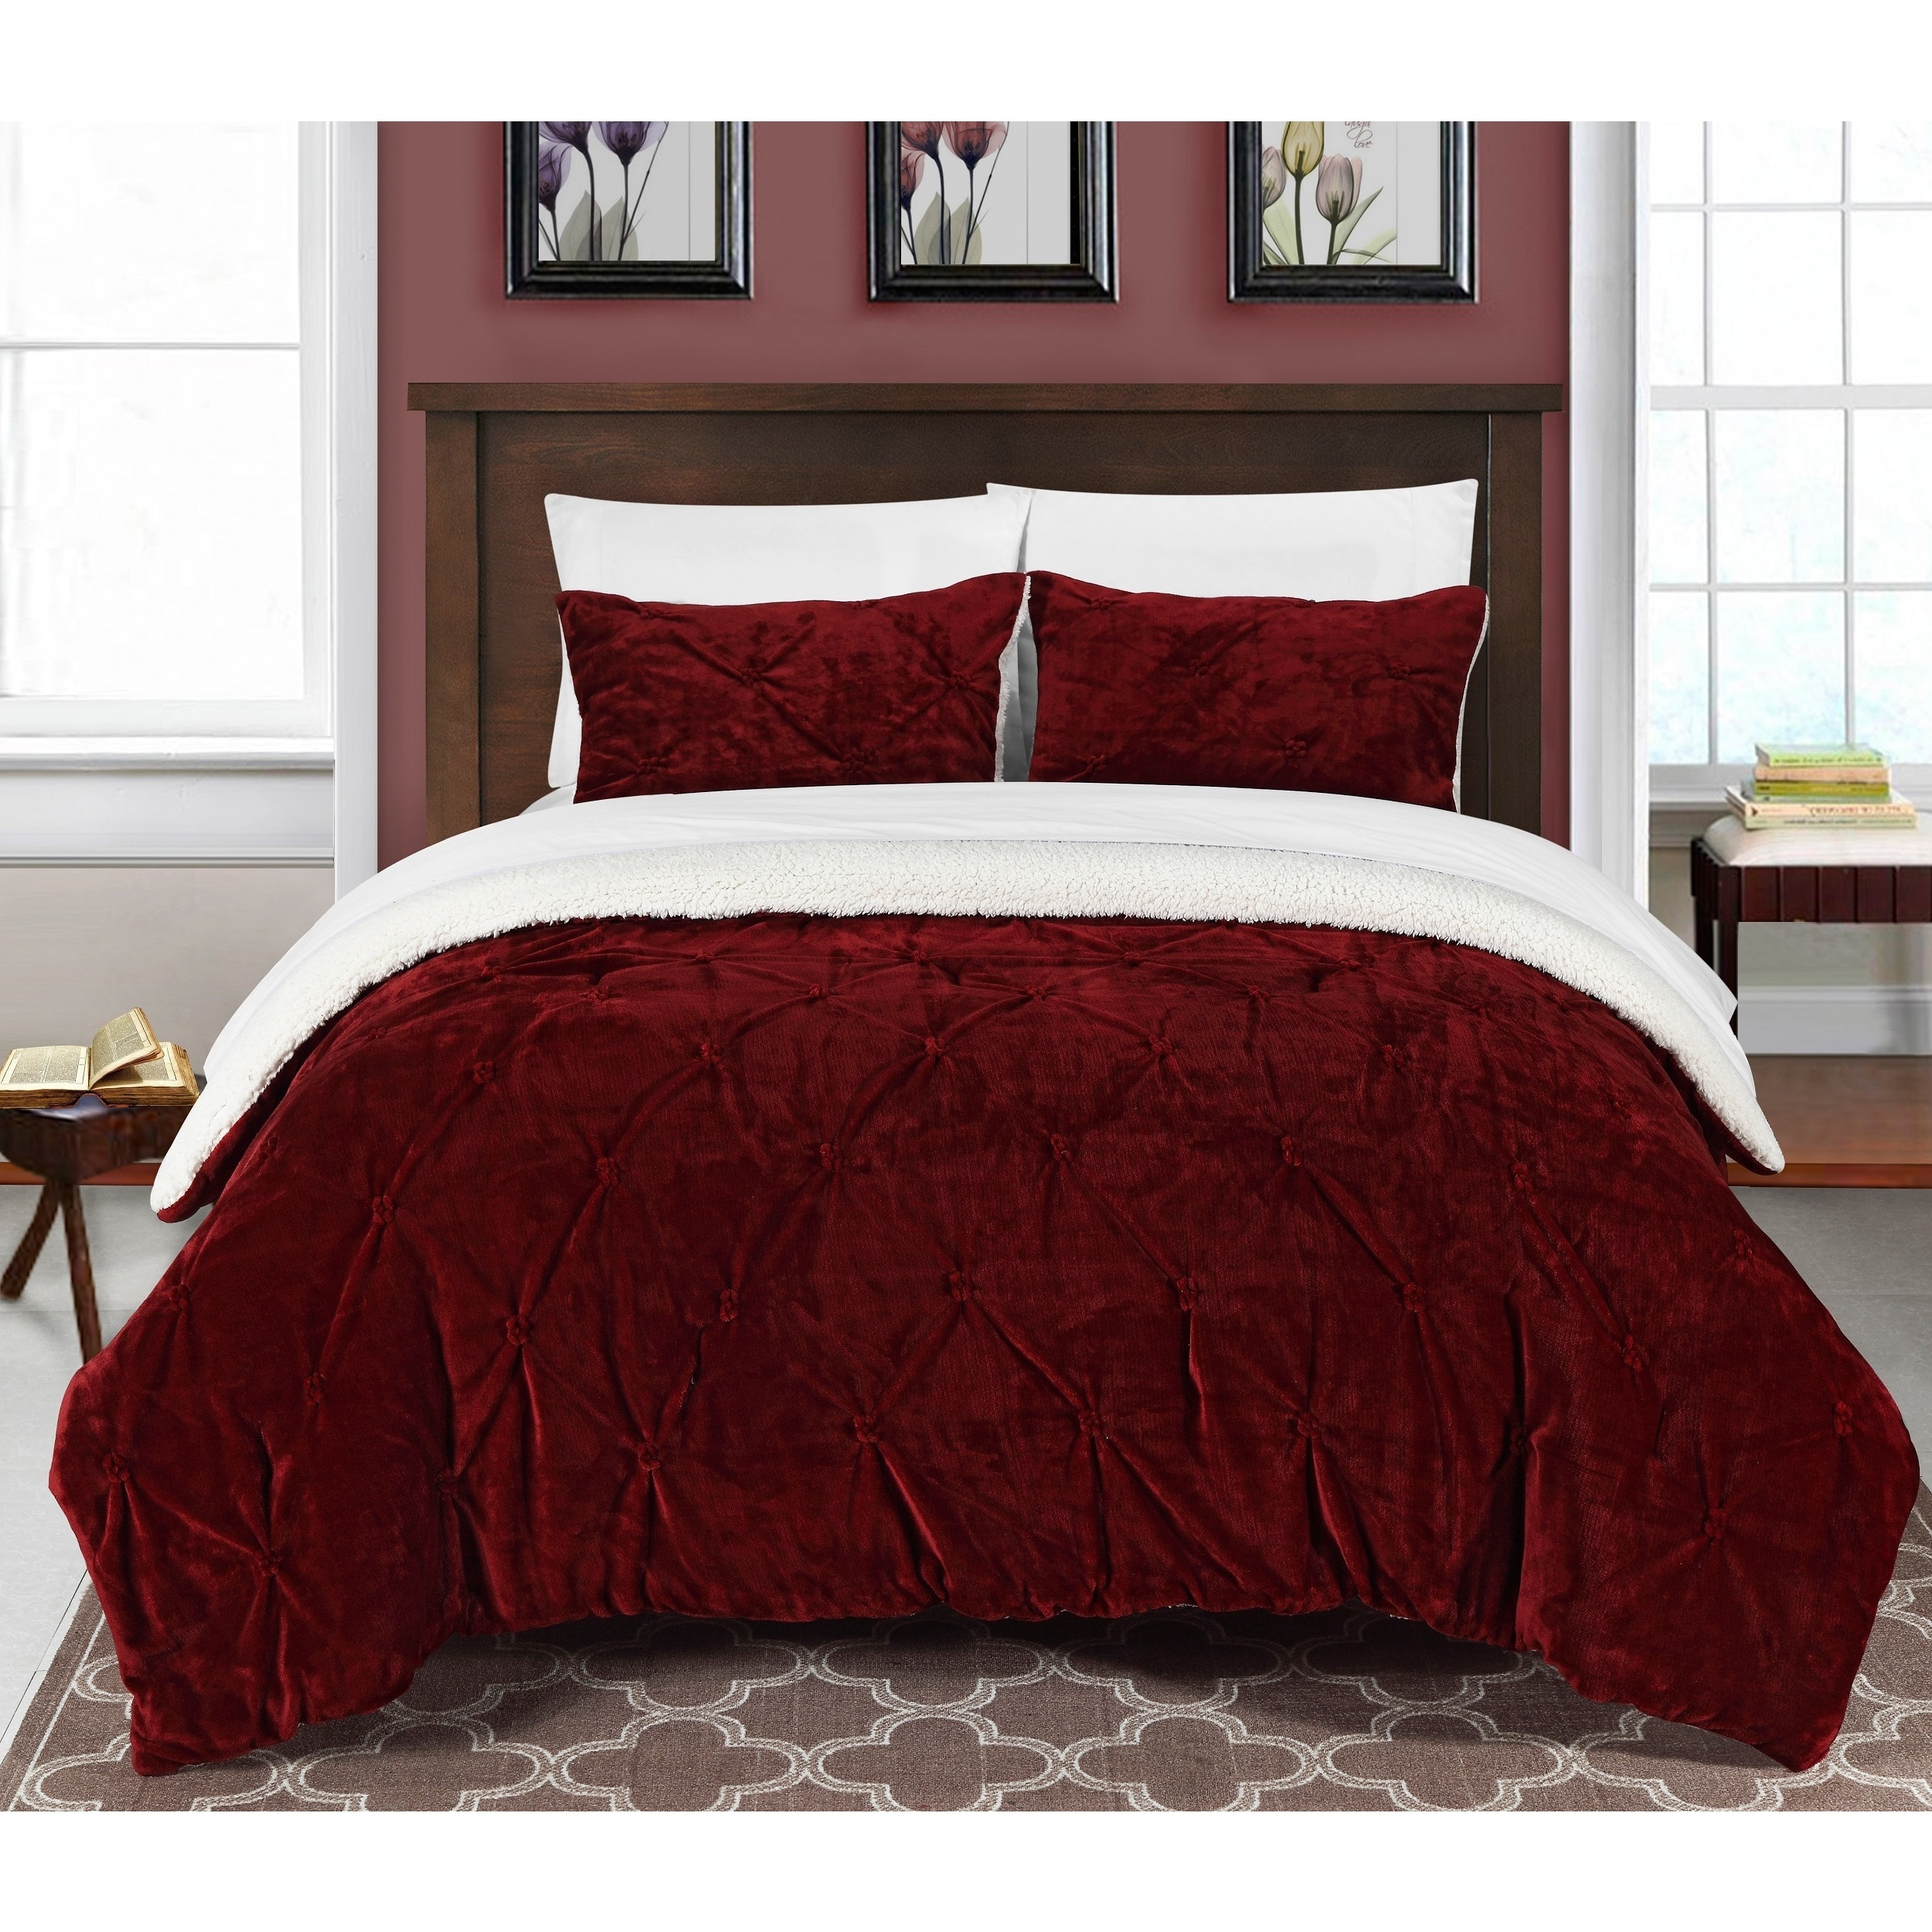 and gardens piece brown walmart homes vines burgundy set better comforter bedding com ip